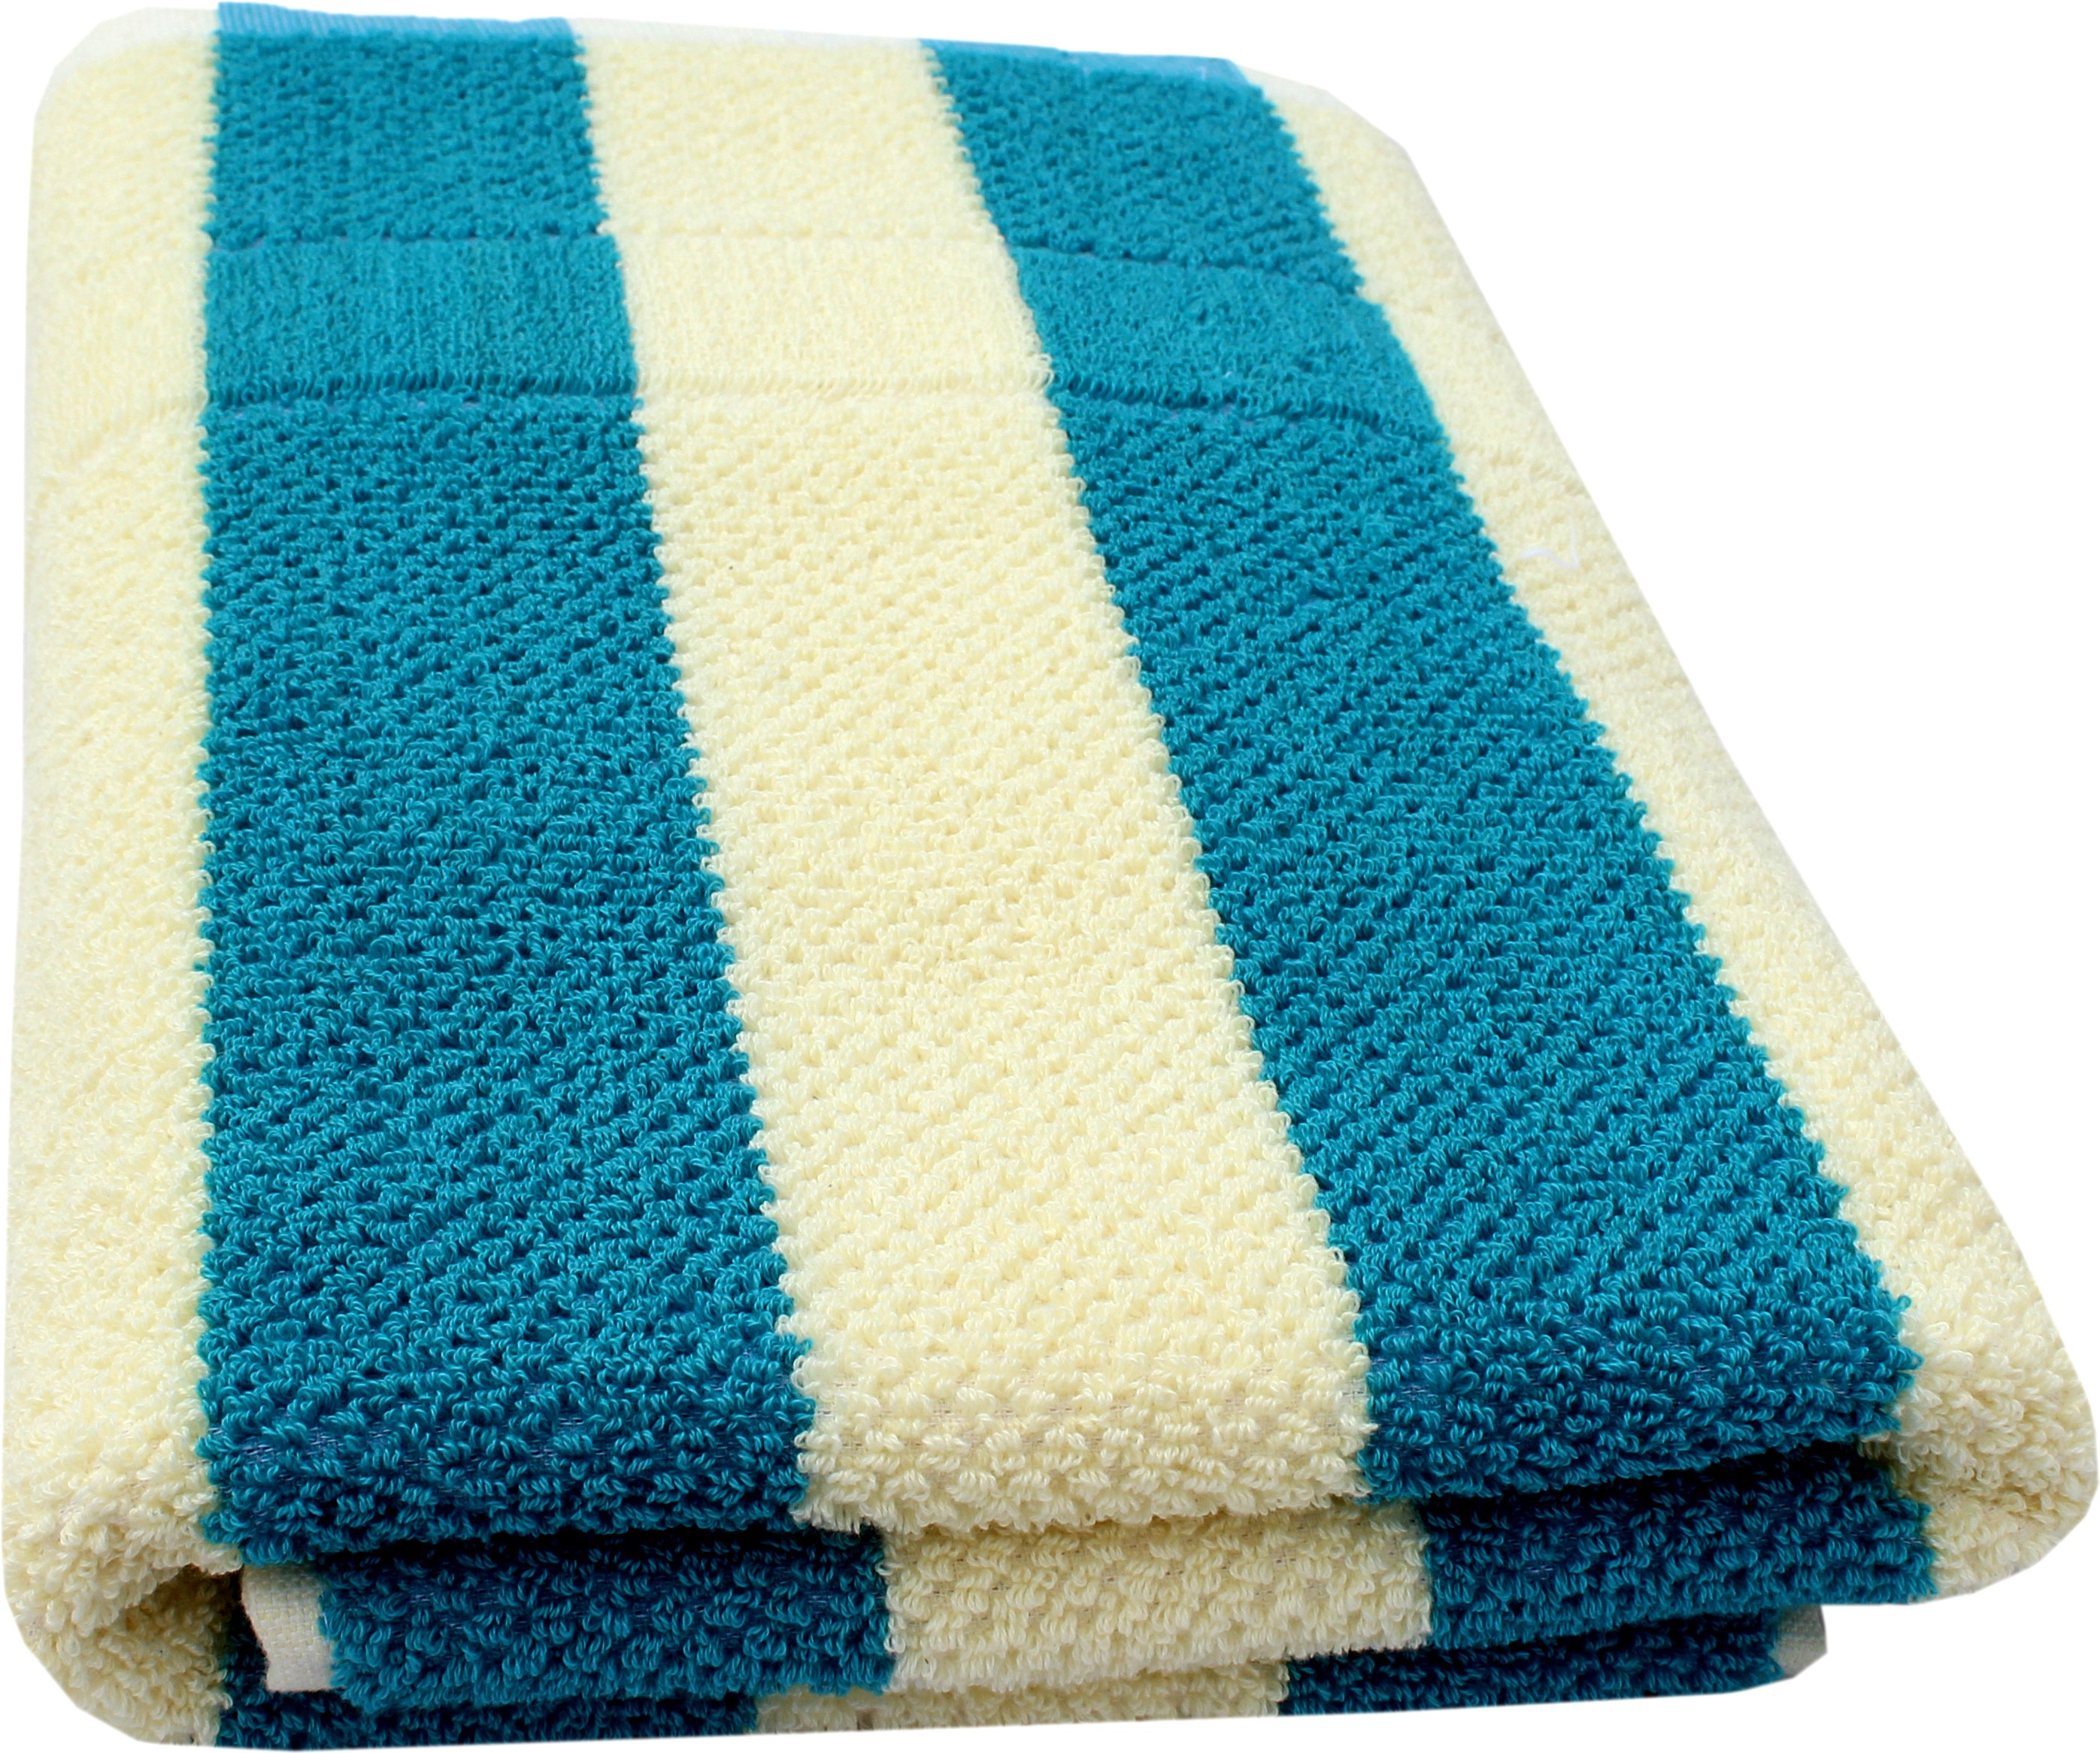 Mandhania Cotton Bath Towel